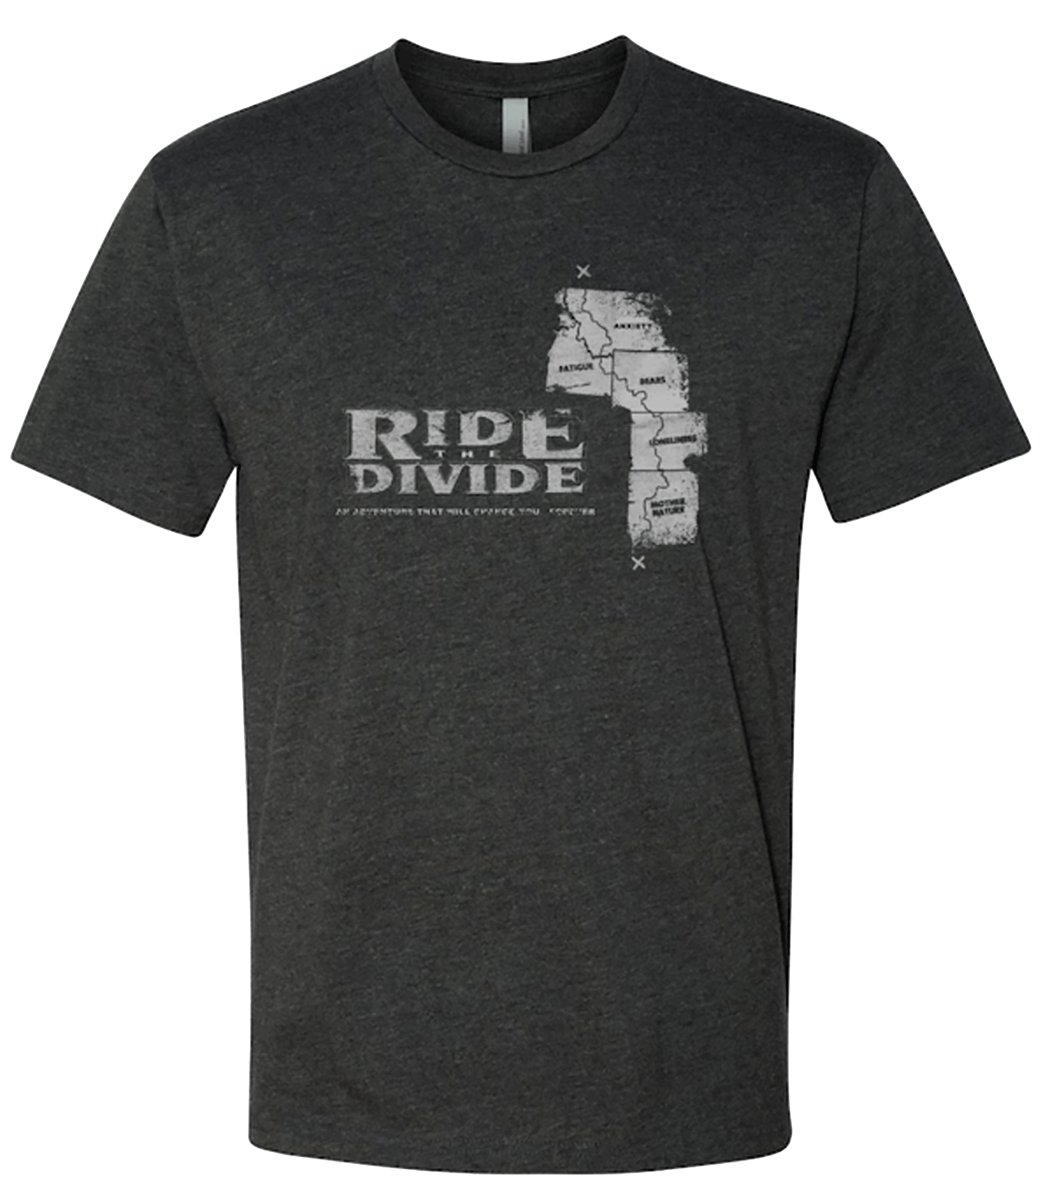 Ride the Divide T-shirt